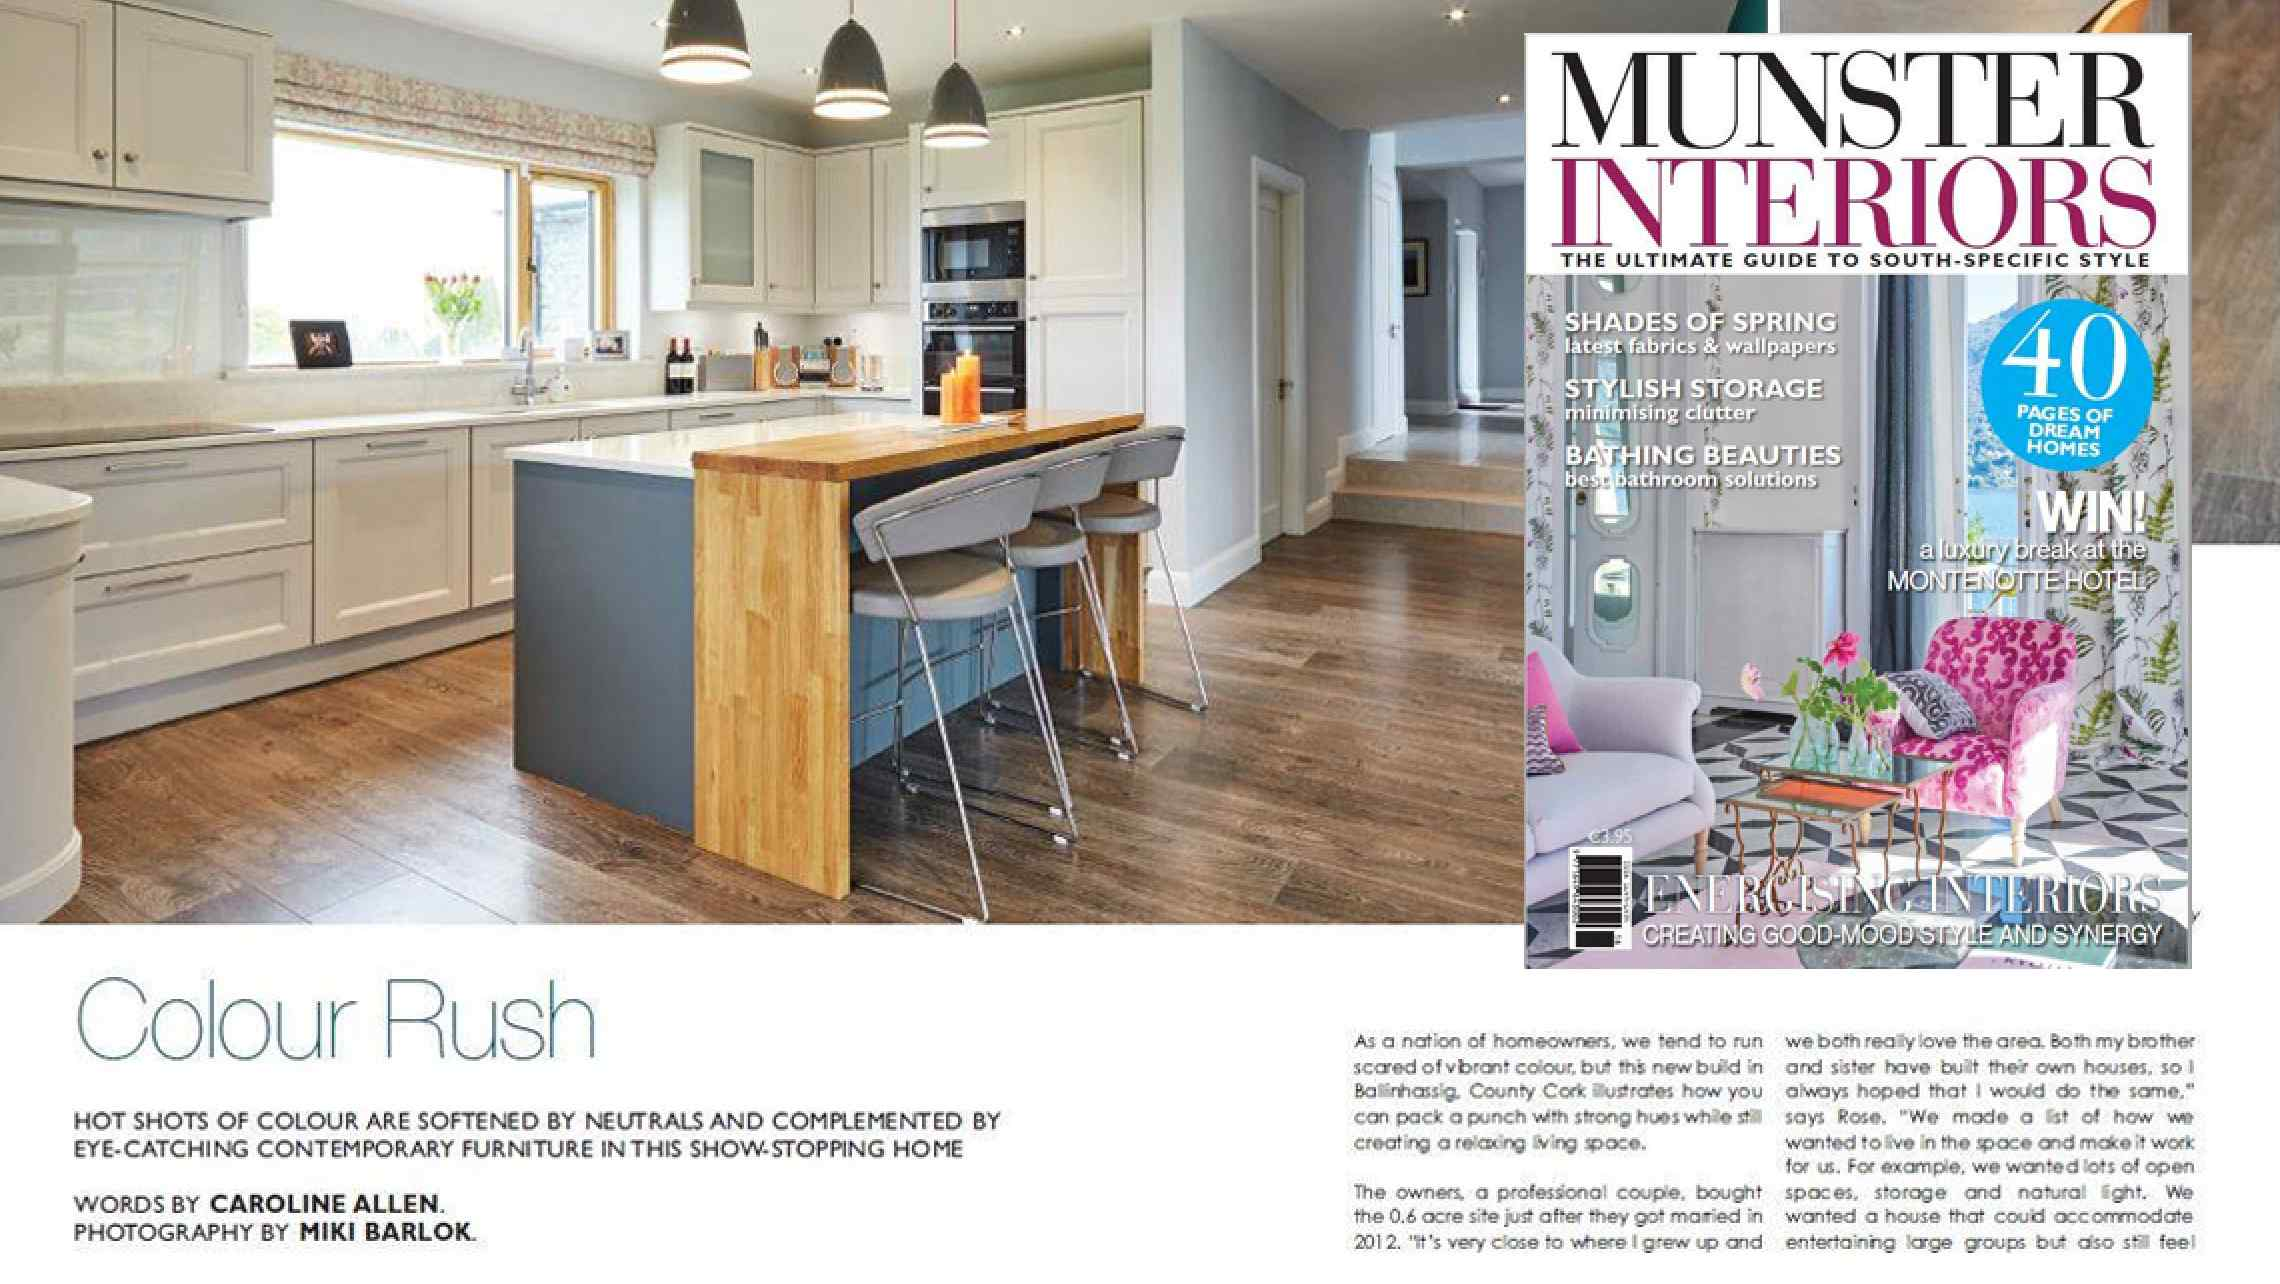 munster interiors spring 2017 edition